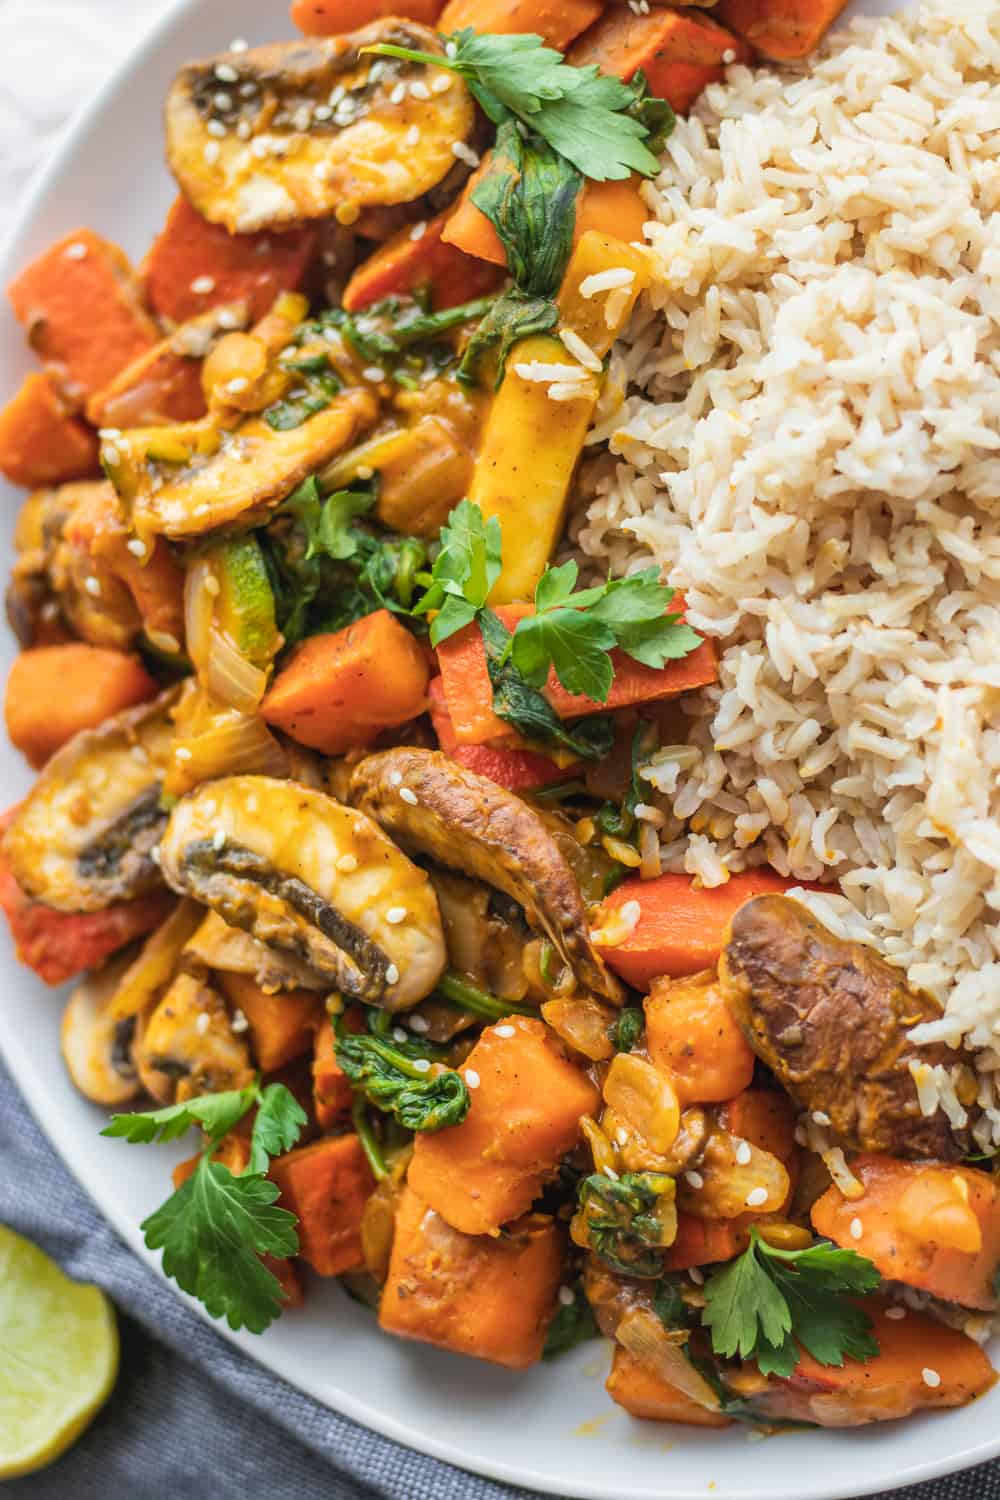 Vegan stir-fry recipe with pumpkin, mushrooms and zucchini